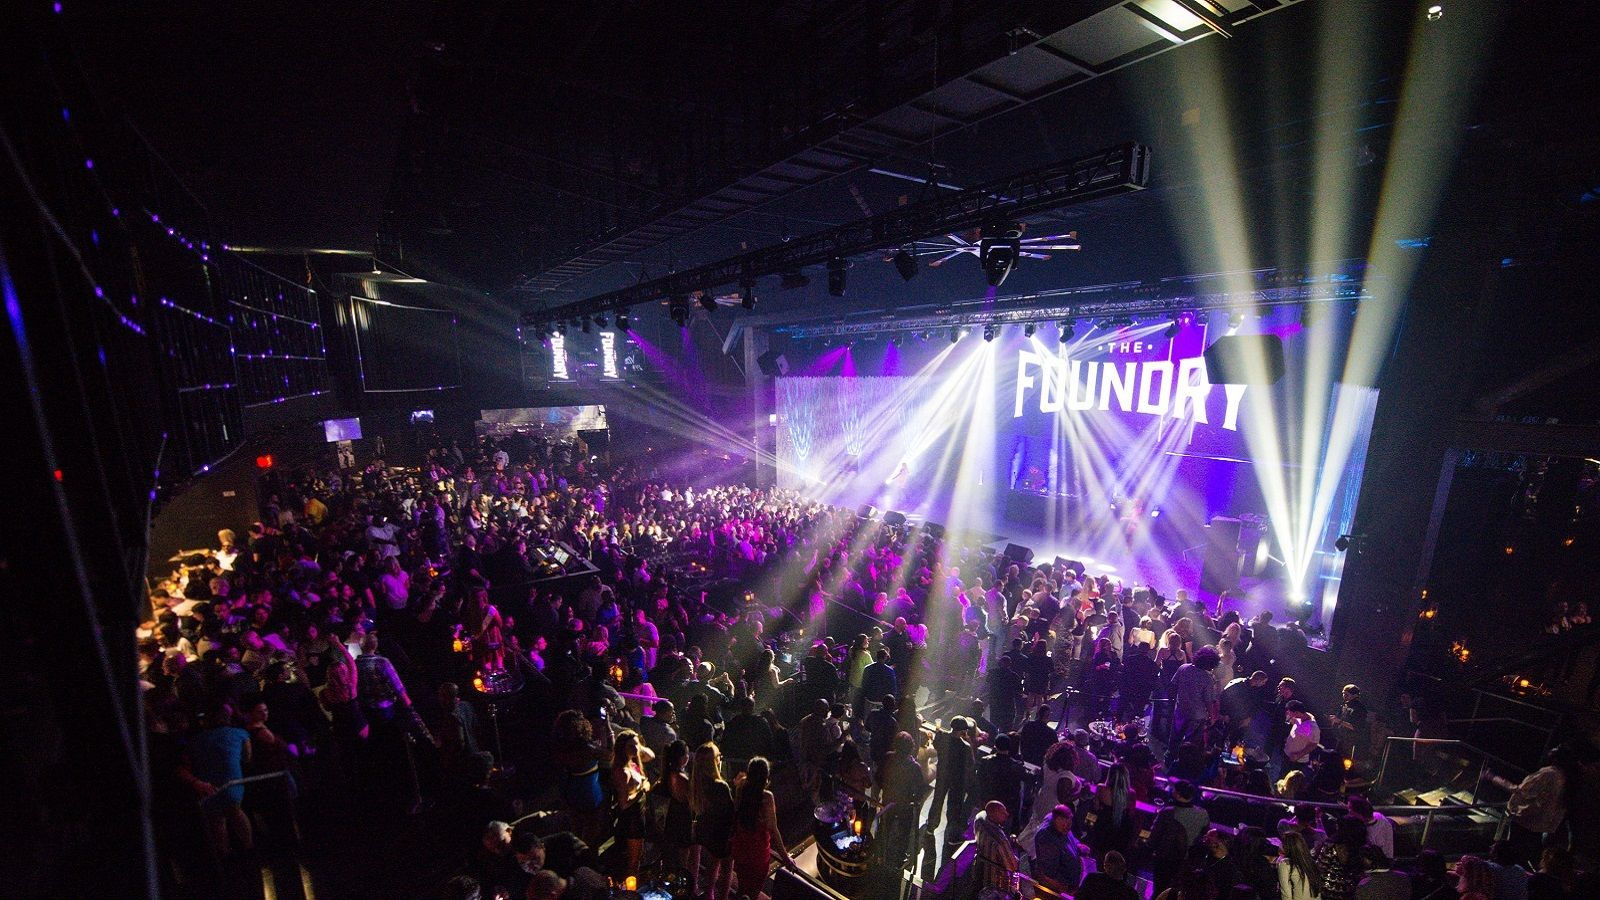 Las Vegas Nightlife - The Foundry